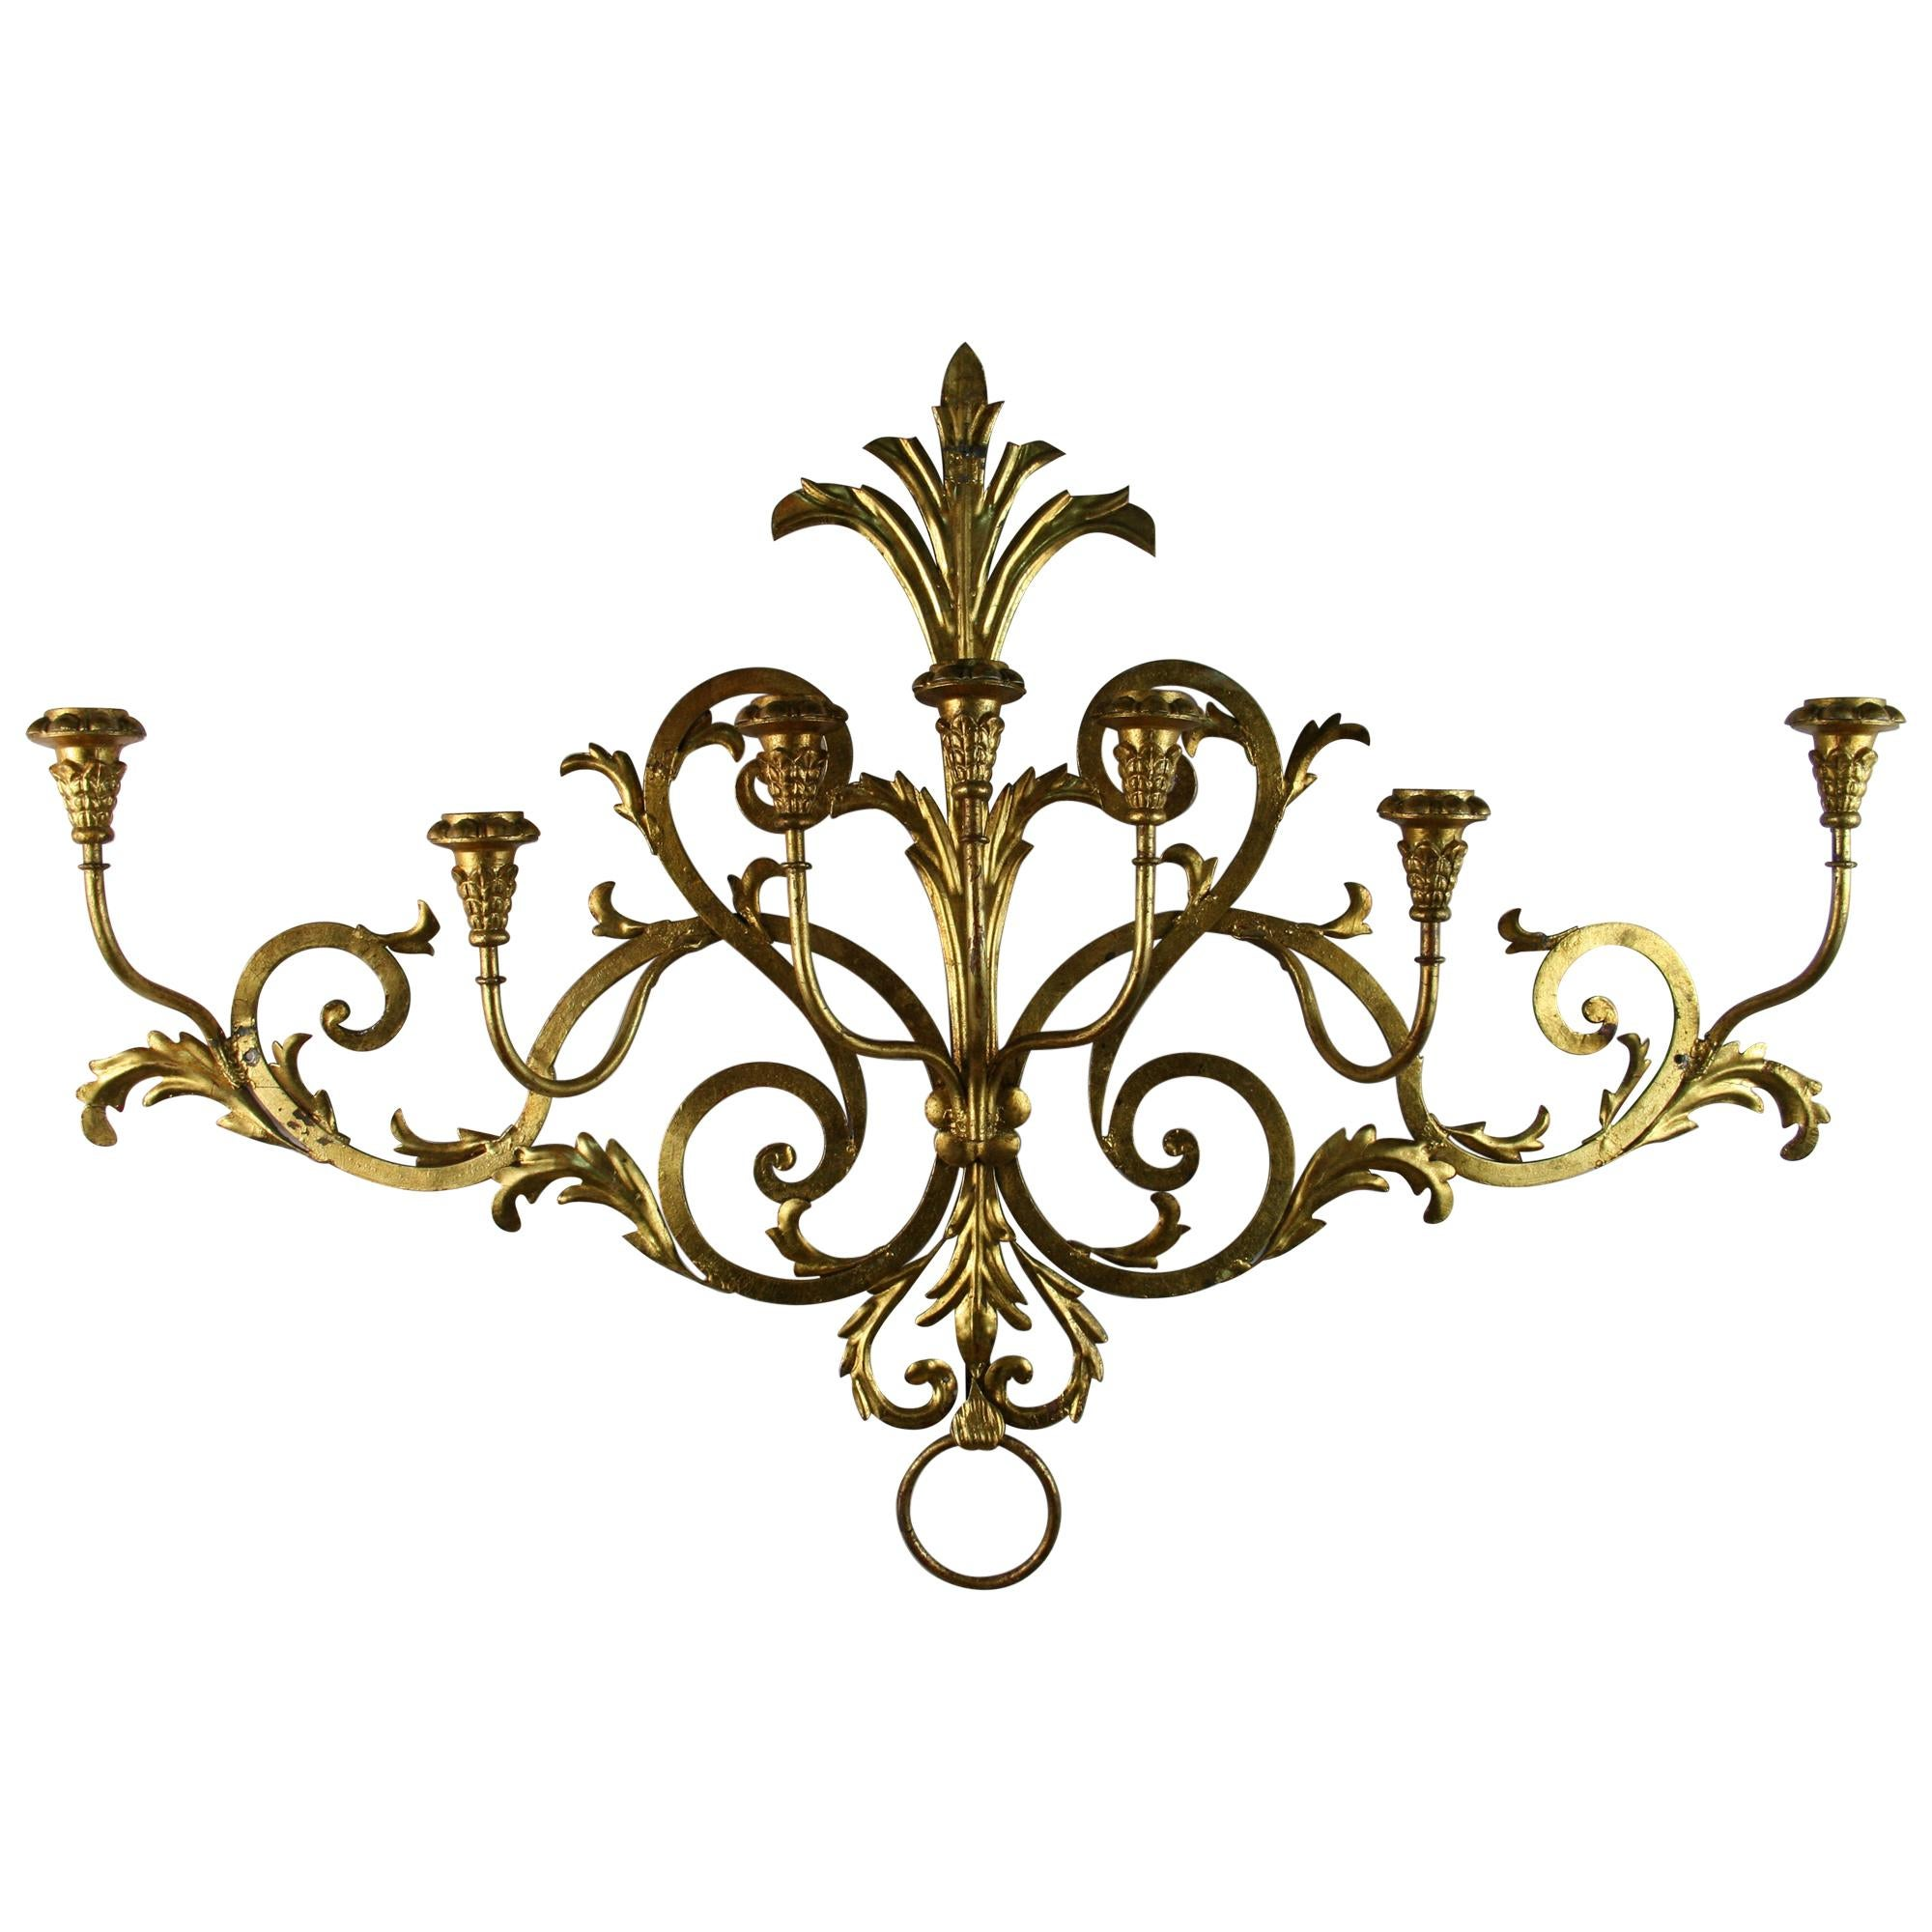 Italian 7 Lite Wall Candle Sconce or Sculpture